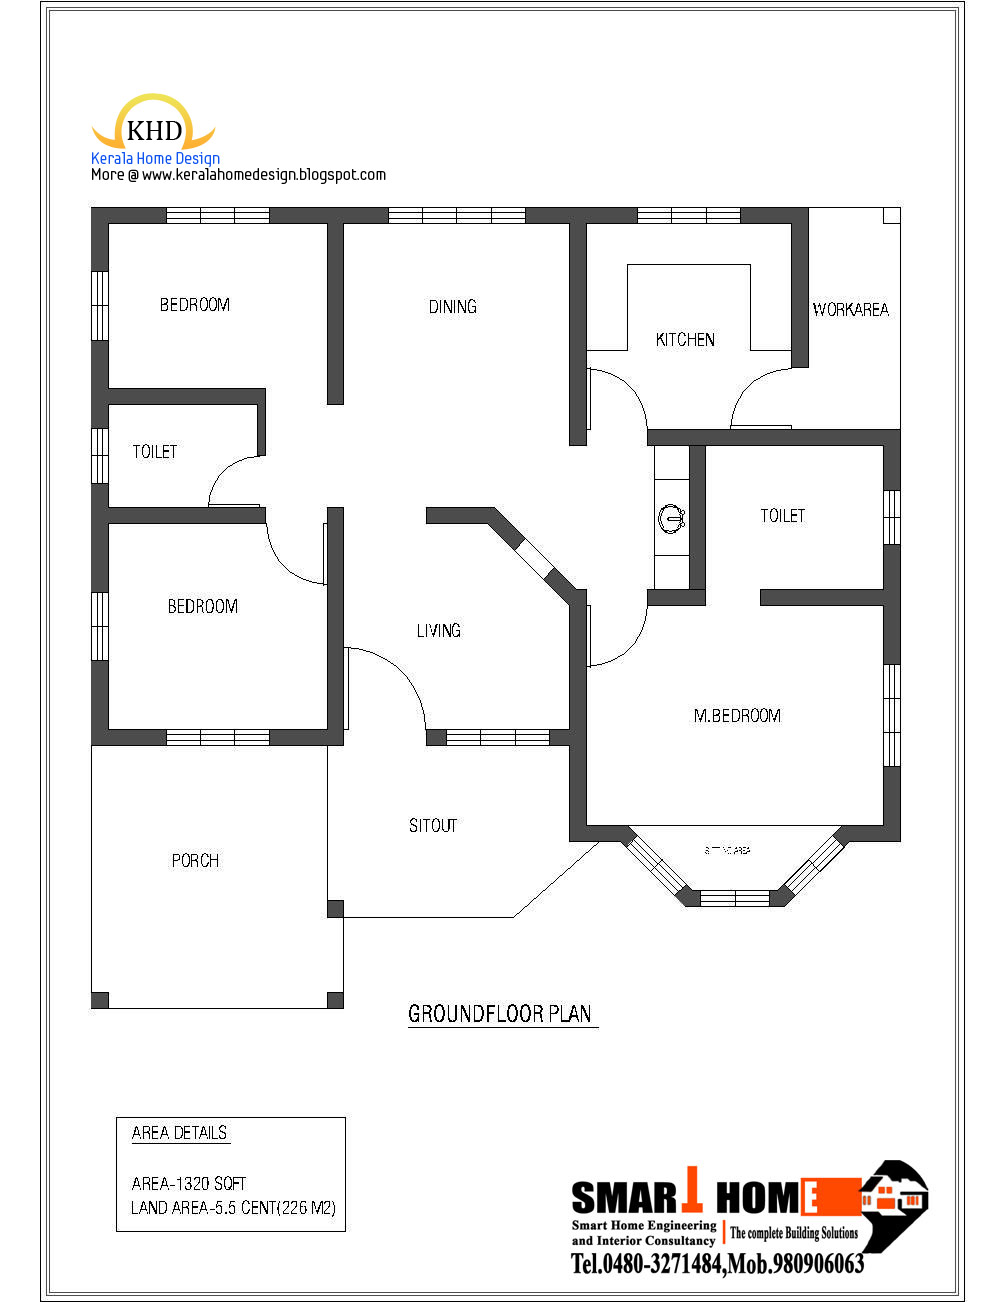 Single floor house plan and elevation 1320 sq ft for Kerala single floor house plans